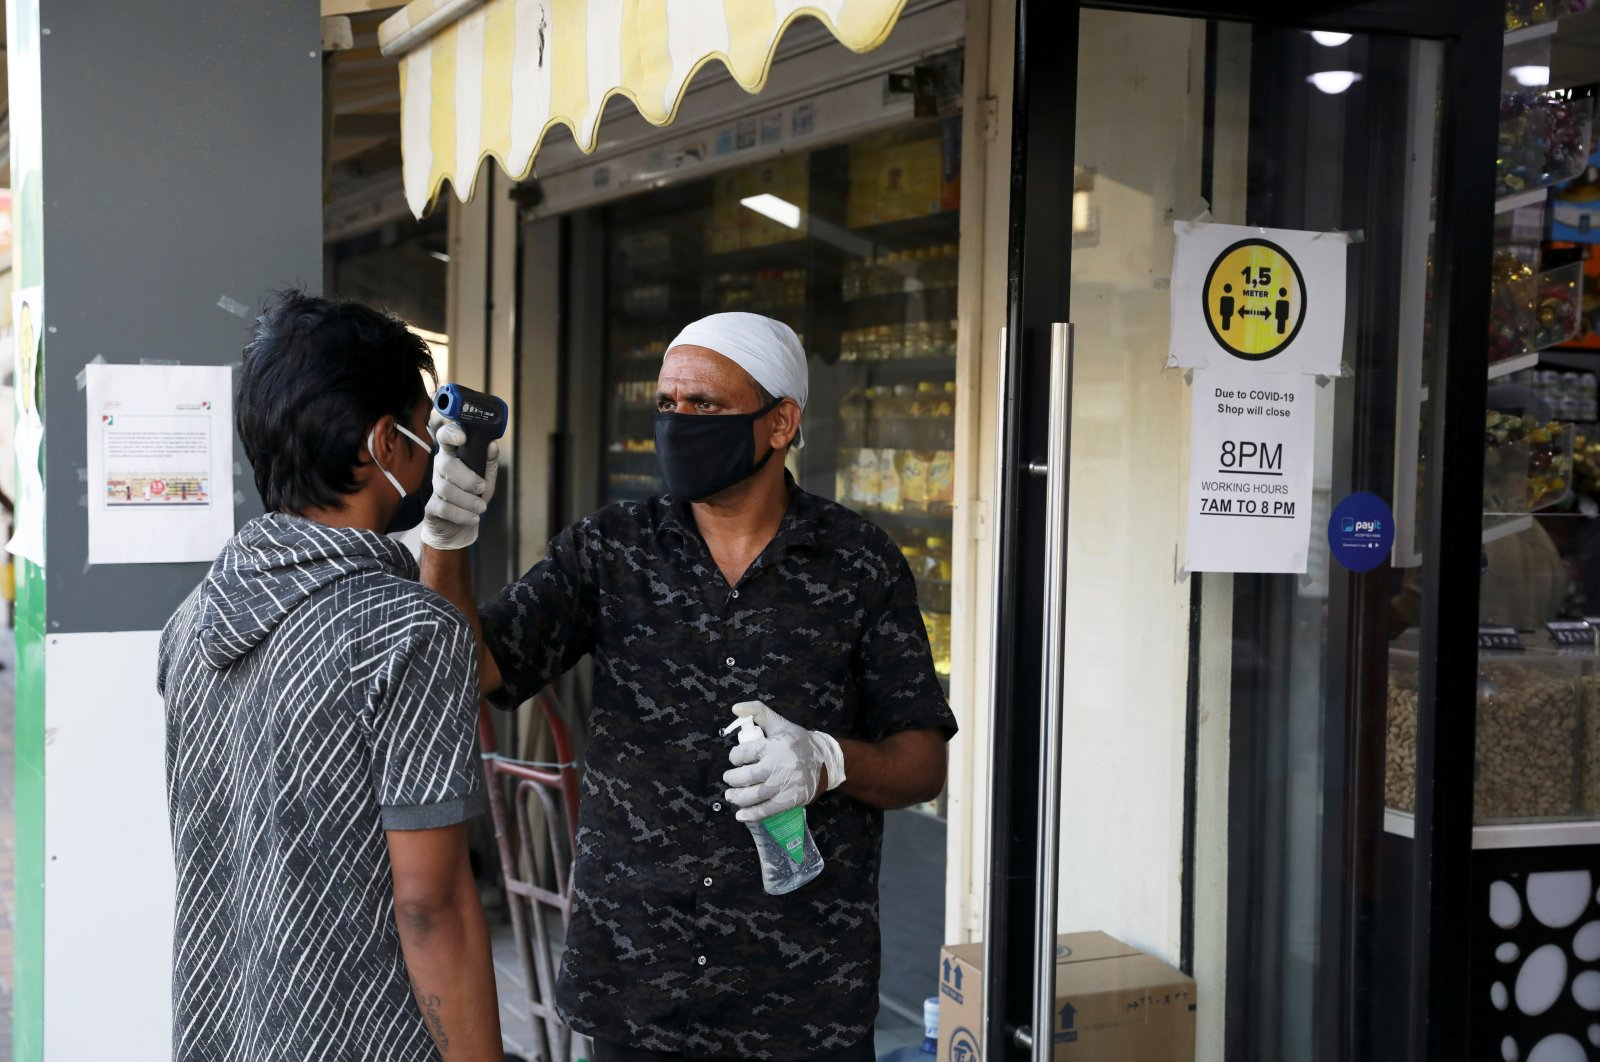 A man wearing a protective face mask has his temperature taken outside a corner store, following the outbreak of COVID-19 in the Al Quoz industrial district of Dubai, UAE, April 14, 2020. (Reuters Photo)